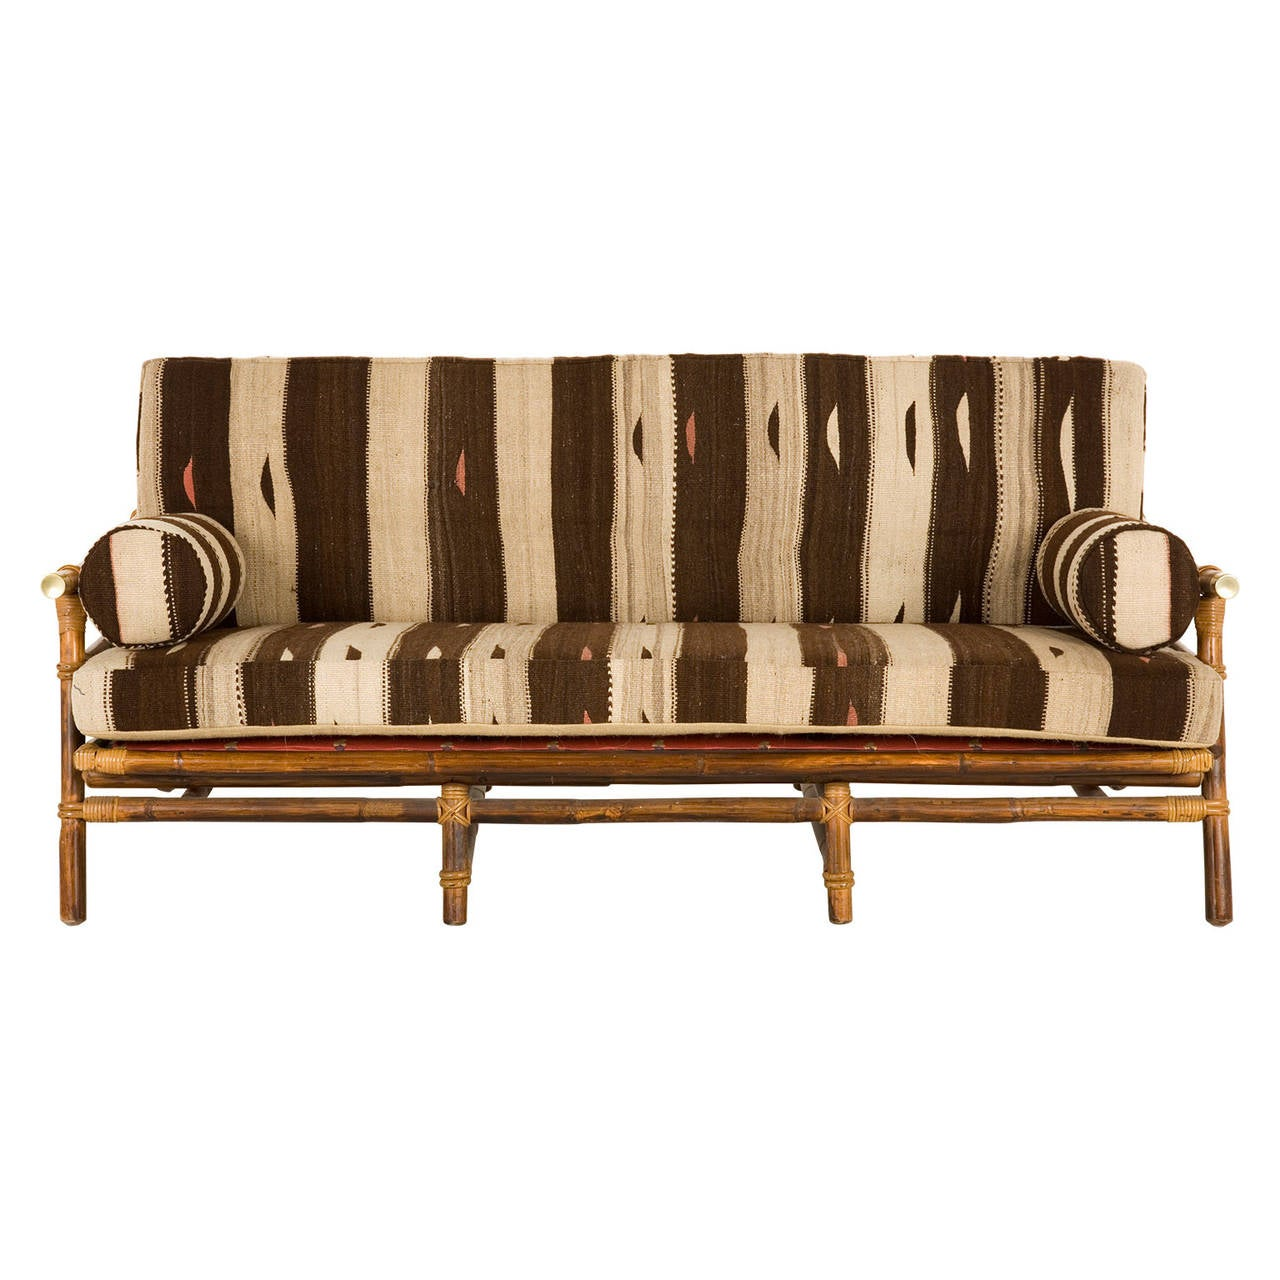 Design Bamboo Couch vintage bamboo sofa at 1stdibs 2